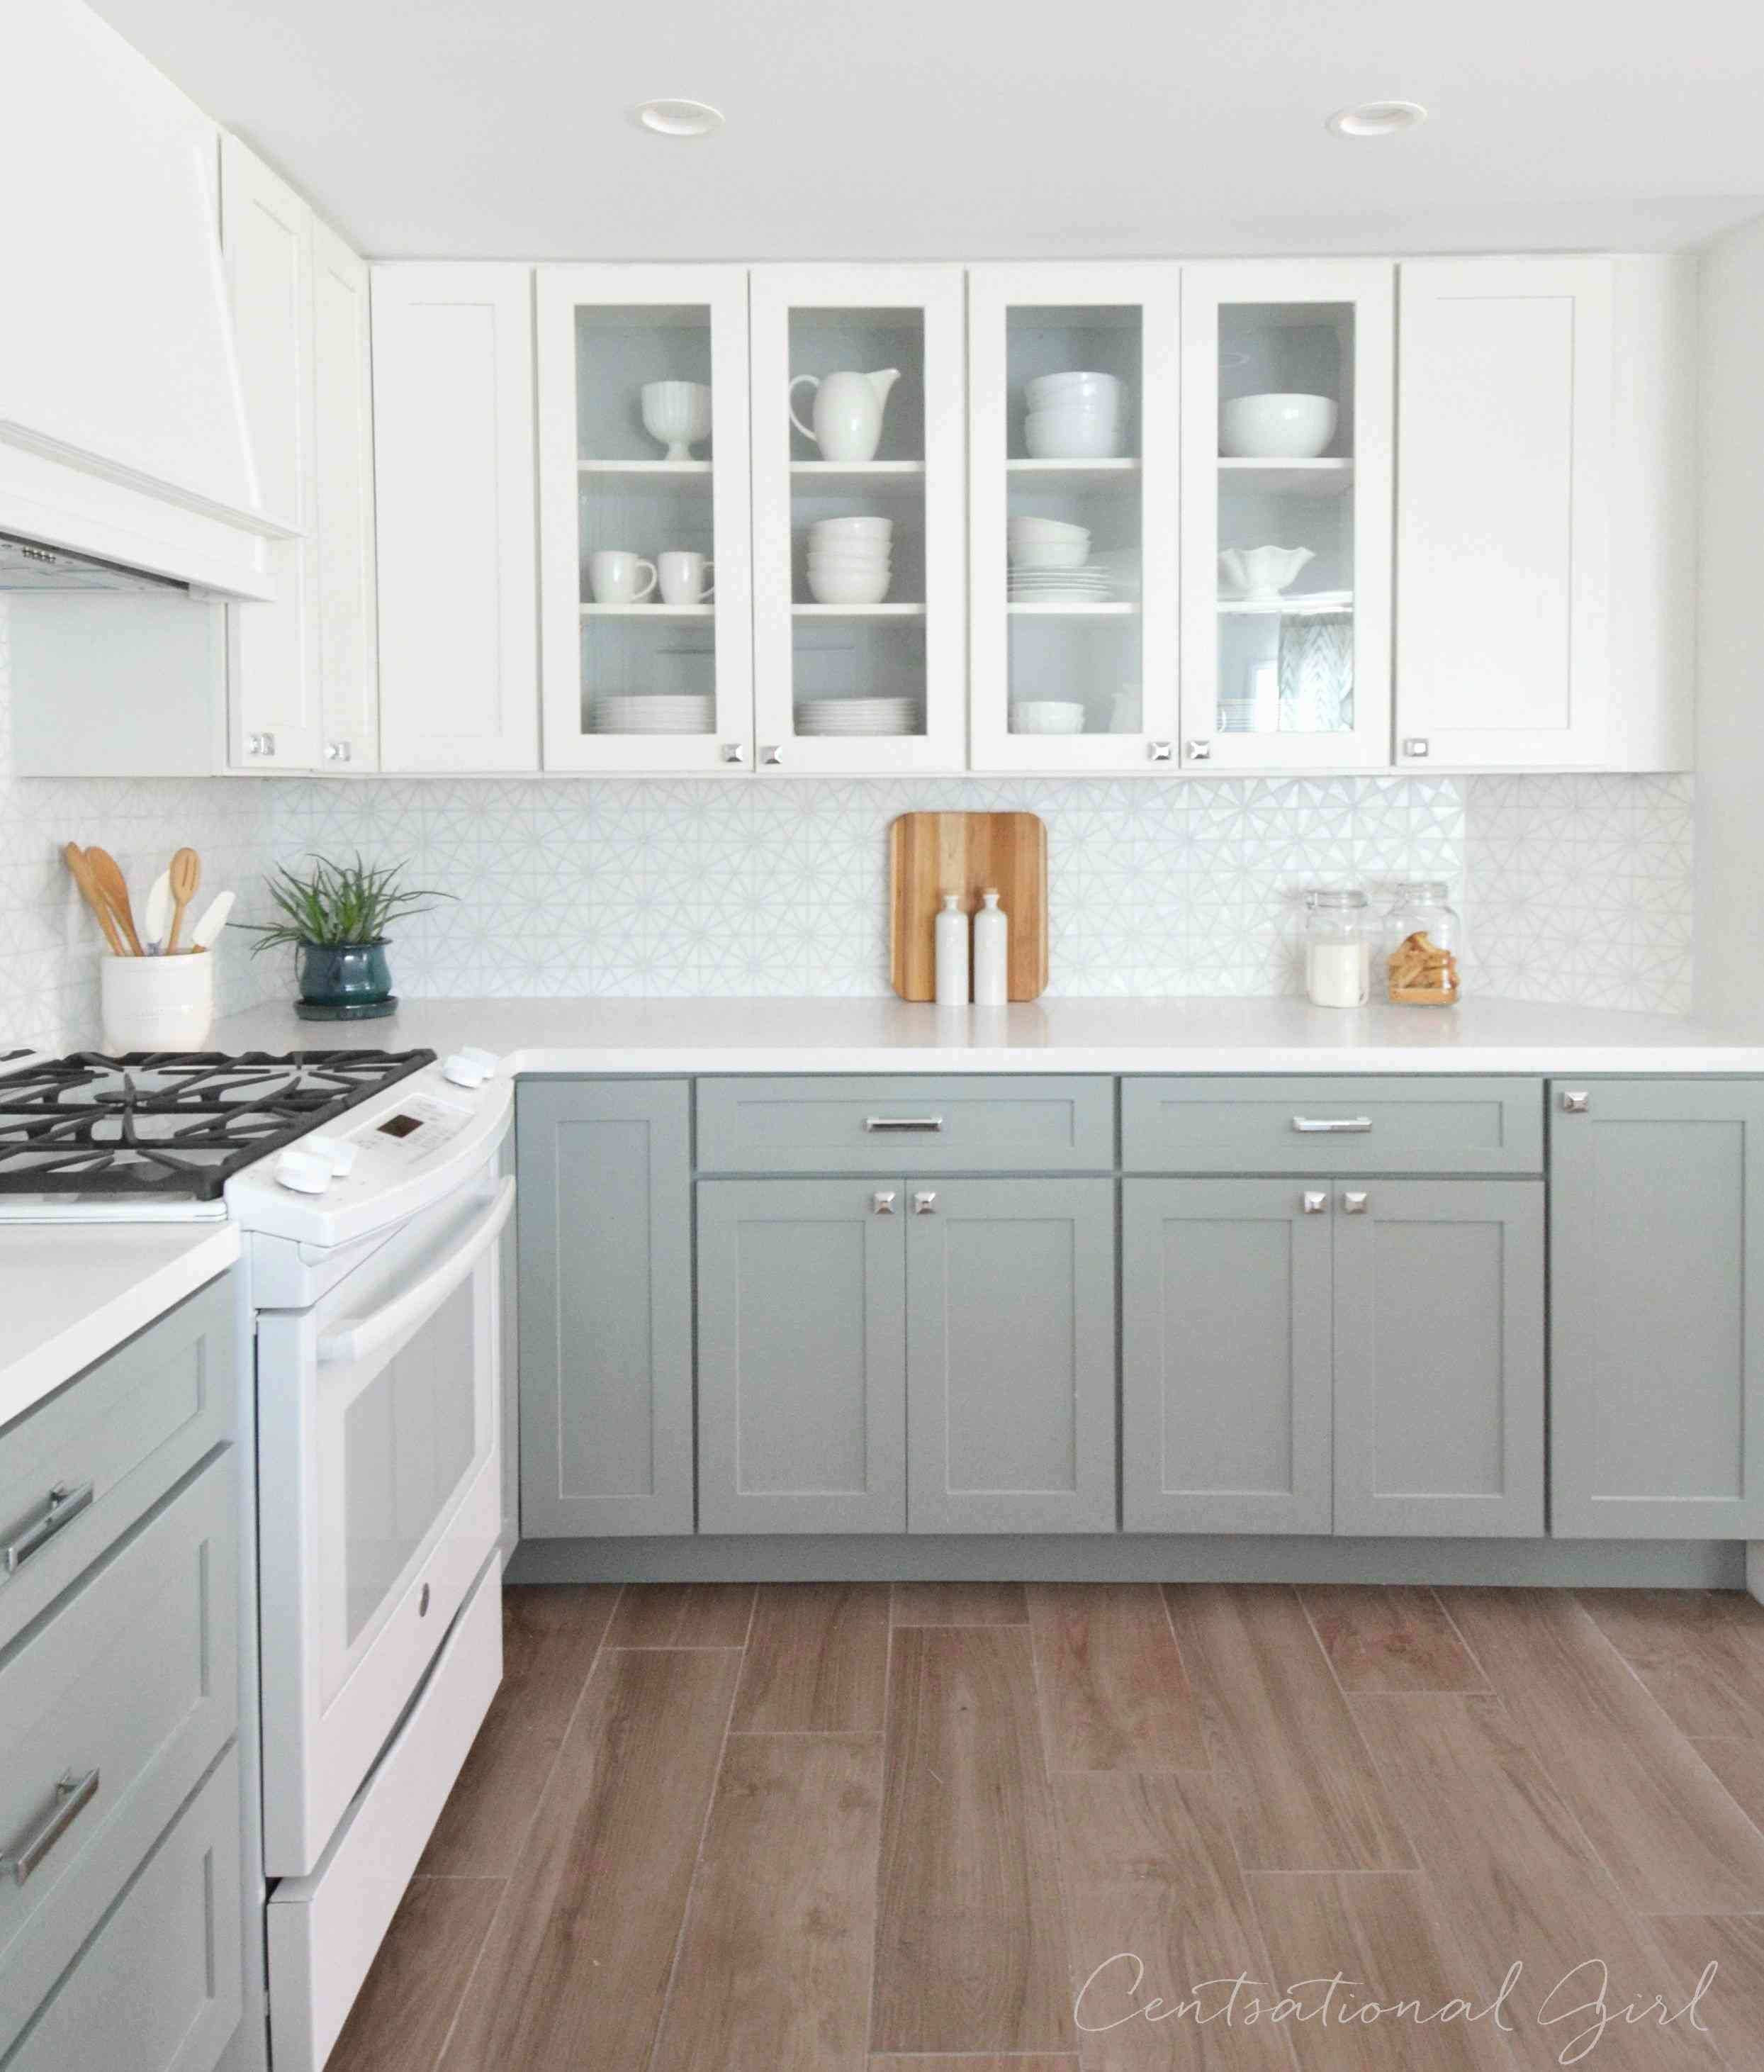 hardwood floors with dark cabinets of inspirational kitchen designs with dark cabinets regarding gallery of inspirational kitchen designs with dark cabinets